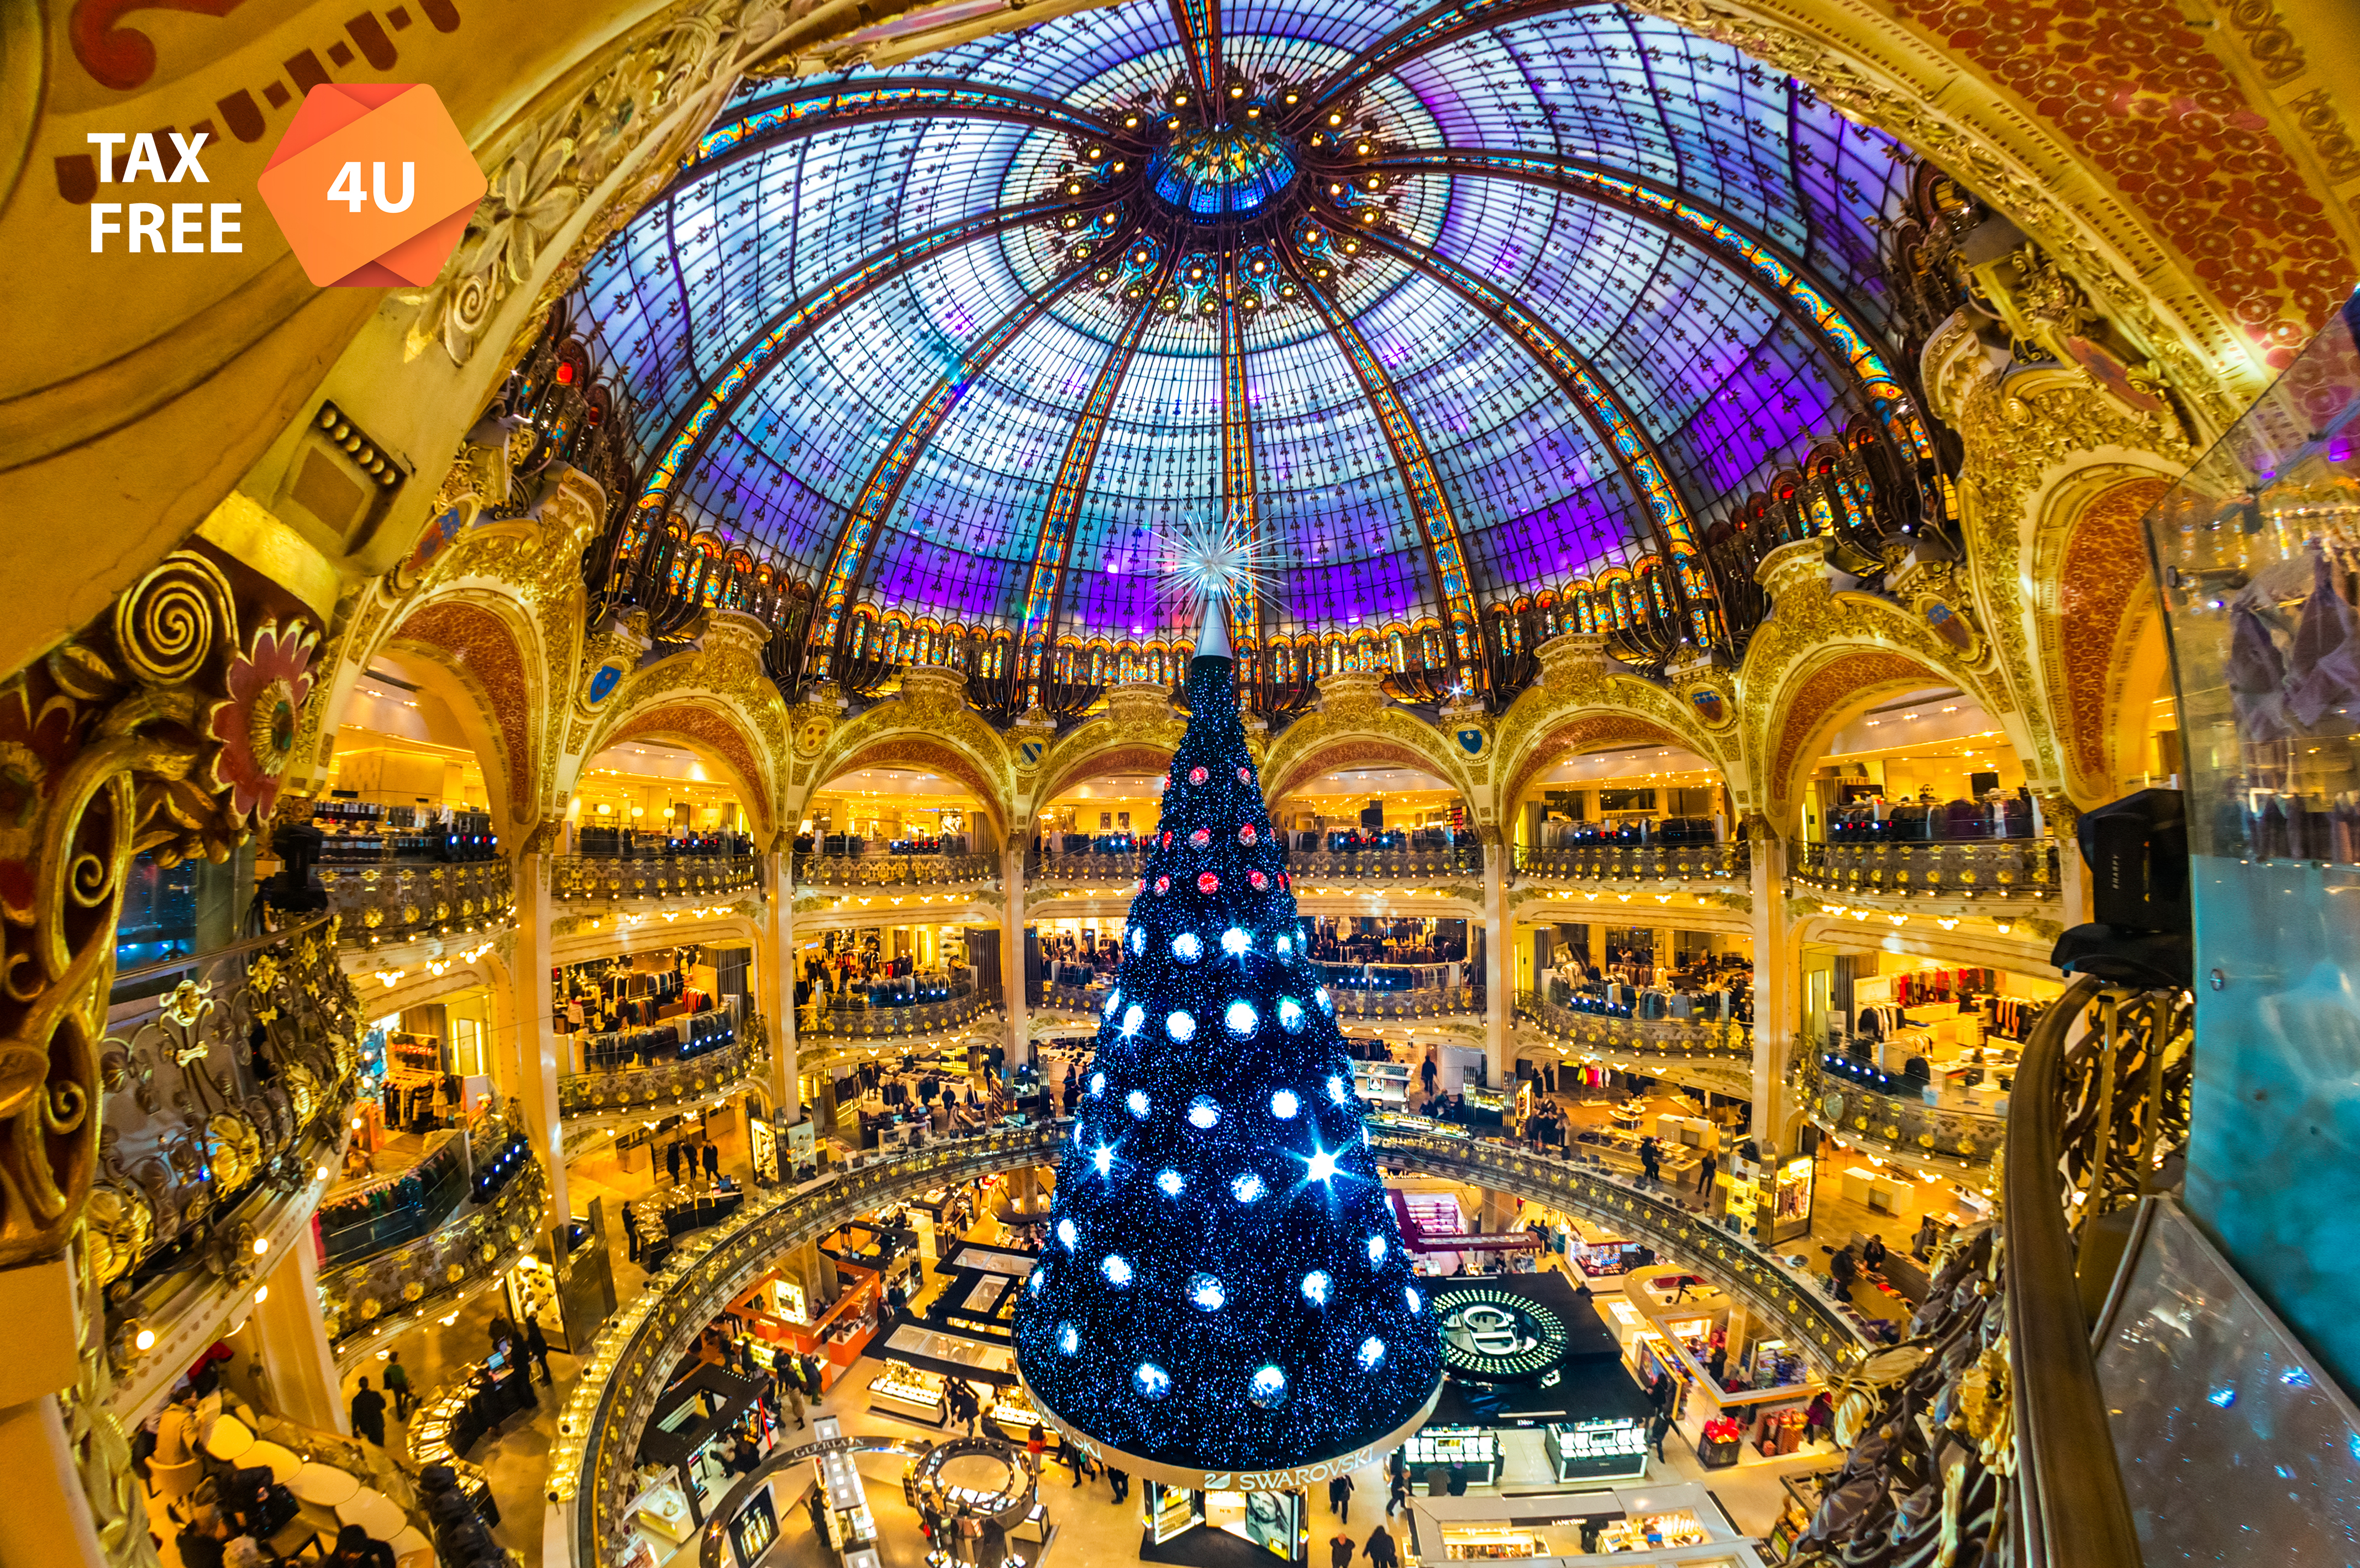 PARIS - DECEMBER 07: The Christmas tree at Galeries Lafayette on December 07, 2012, Paris, France.  The Galeries Lafayette has been selling luxury goods since 1895.